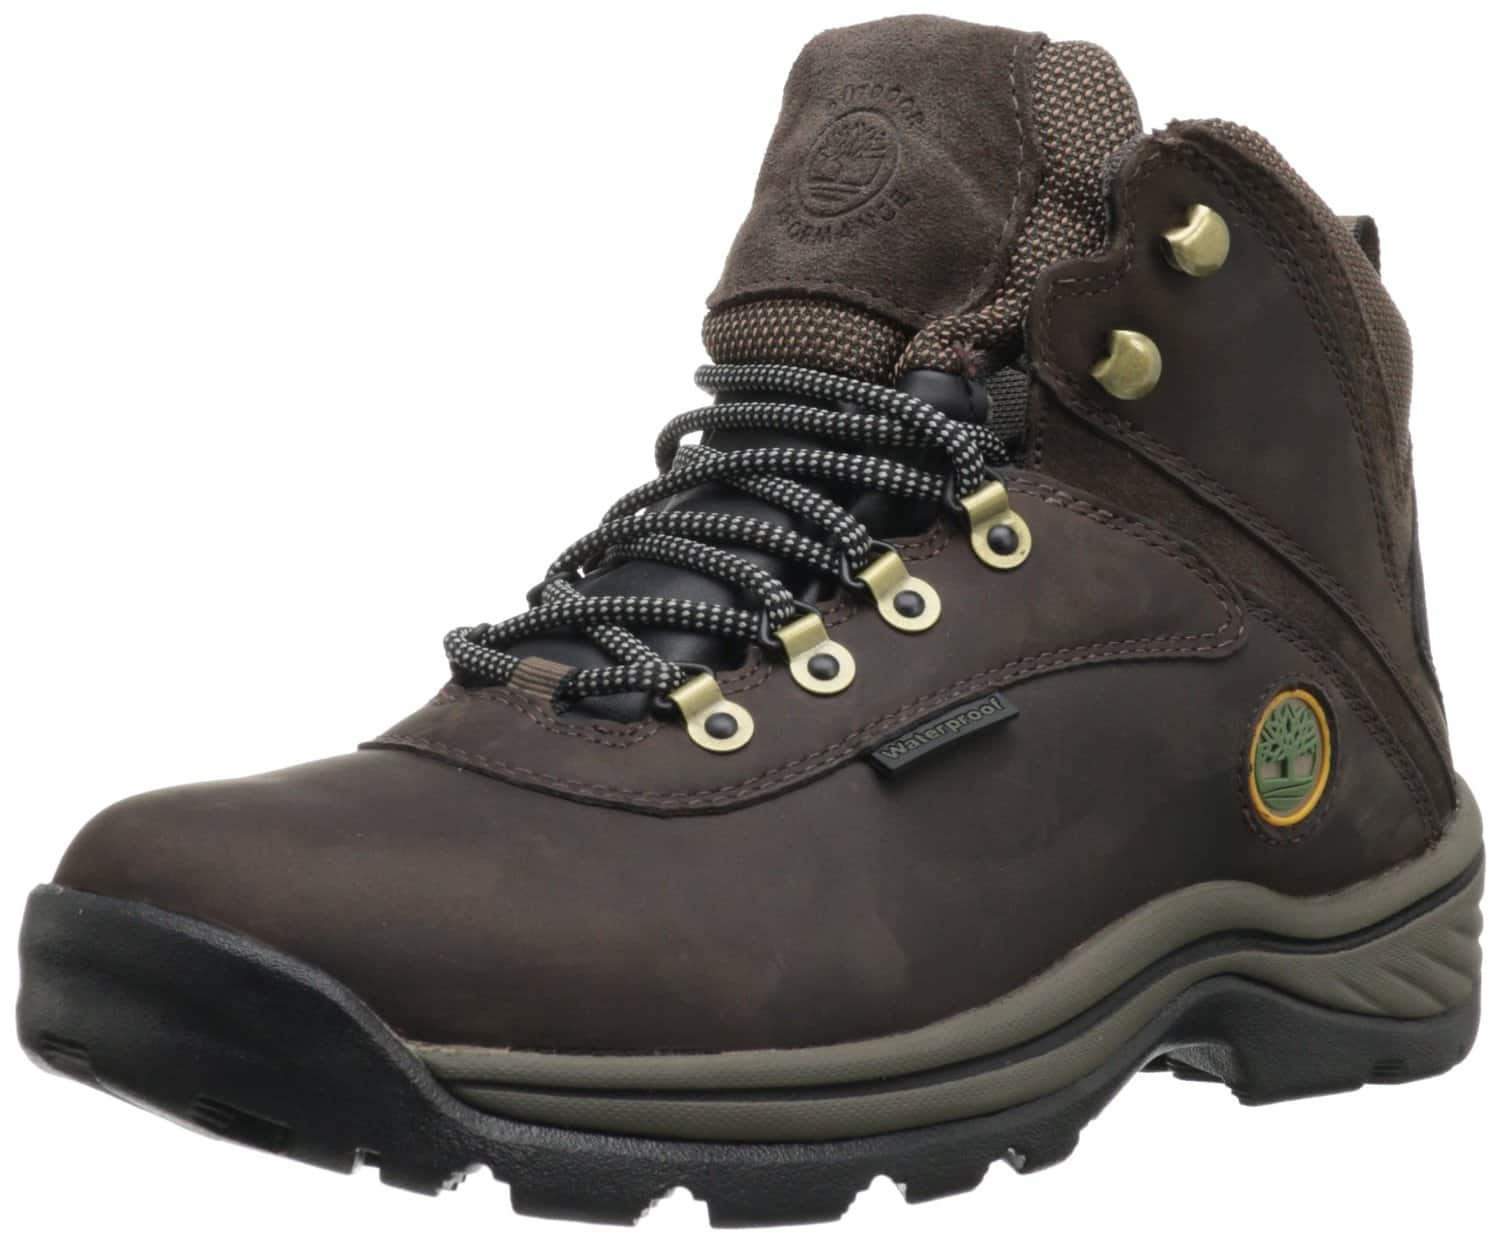 Timberland - Deal of the Day on Amazon - 50% off Men's (selected style's)